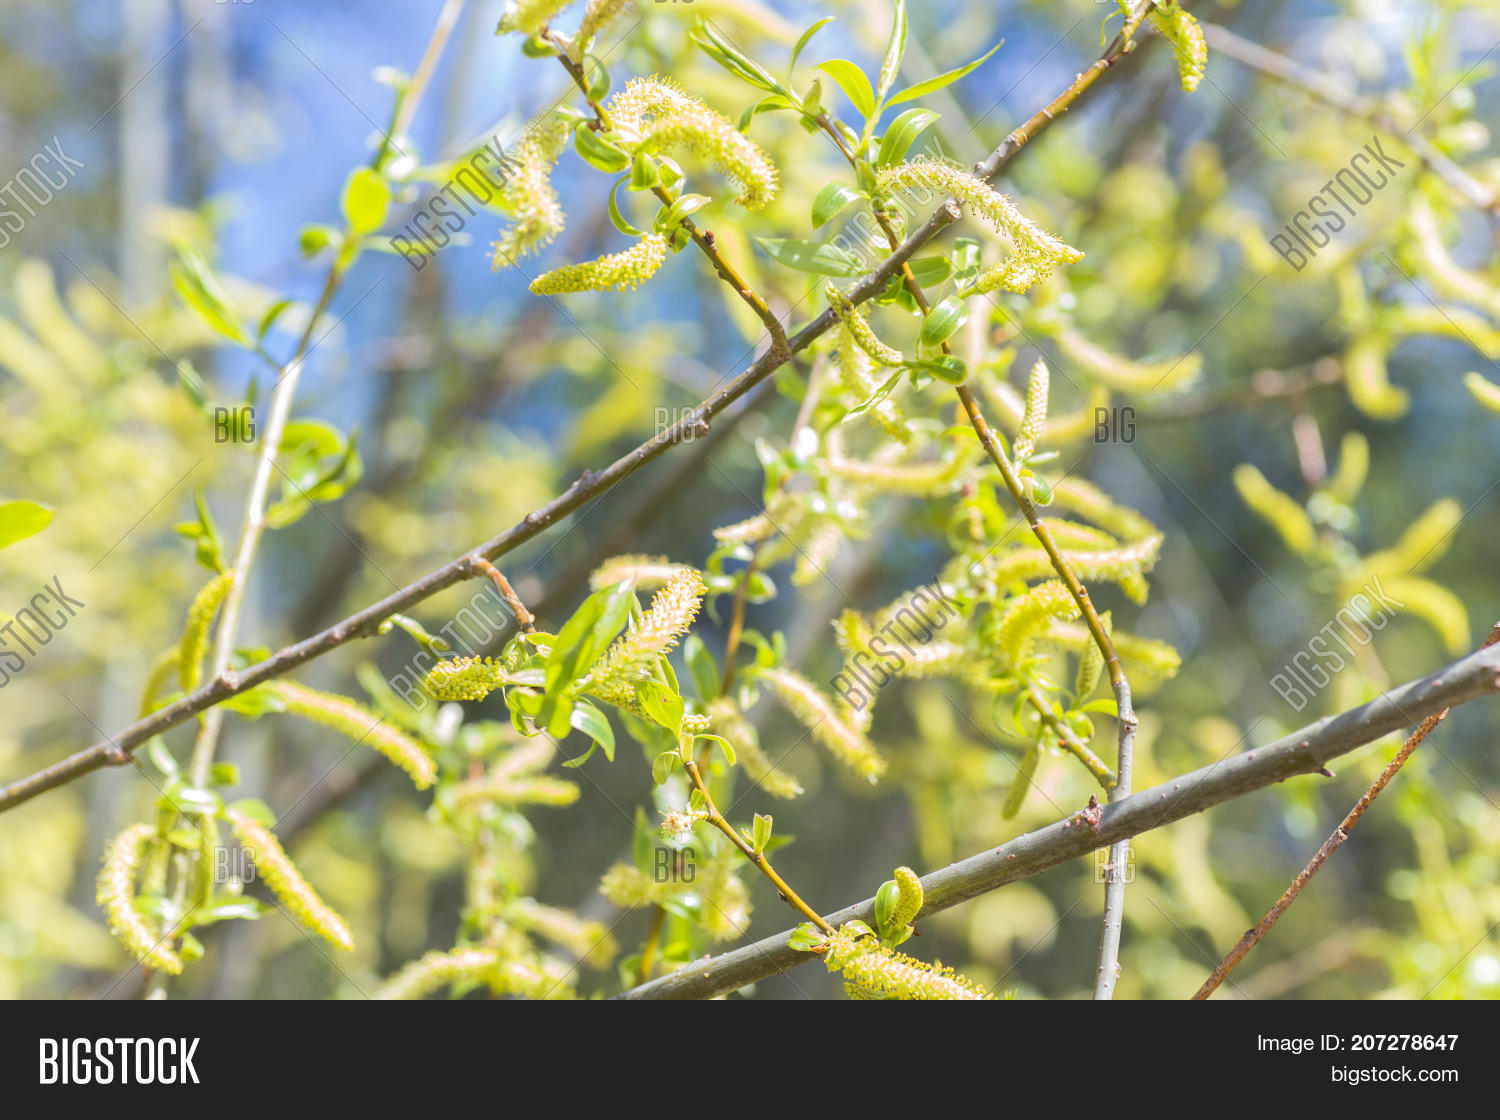 Collect,Risen,alba,ament,argiolus,background,beautiful,blooming,blossom,branch,bright,buds,bush,catkin,closeup,easter,flora,floral,flower,fresh,green,growth,holiday,inflorescence,leaf,leaves,natural,nature,plant,pollen,salix,season,spring,springtime,traditional,tree,twig,willow,yellow